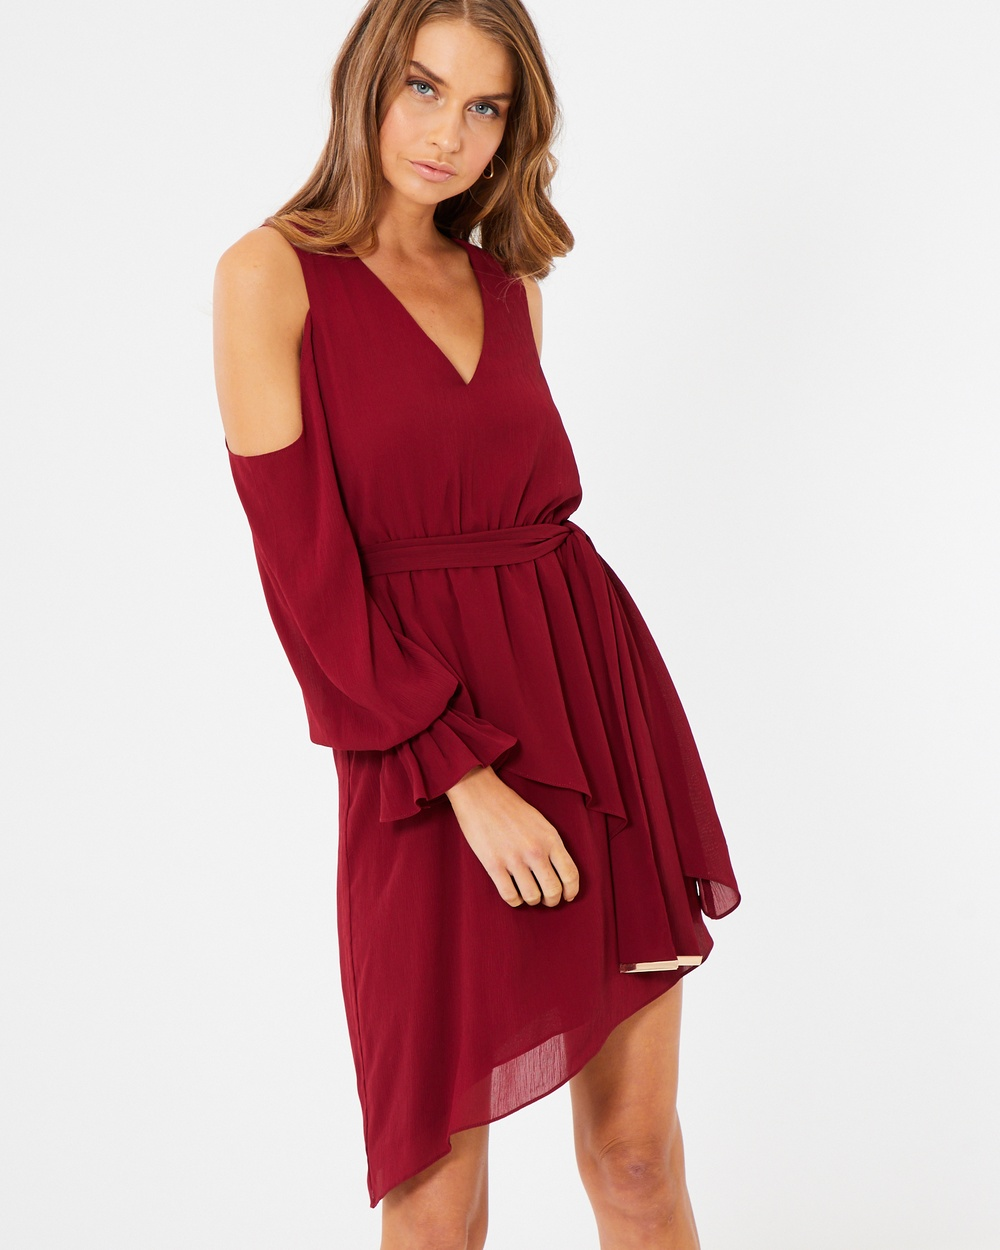 Photo of Tussah Ruby Furla Layered Dress - beautiful dress from Tussah online